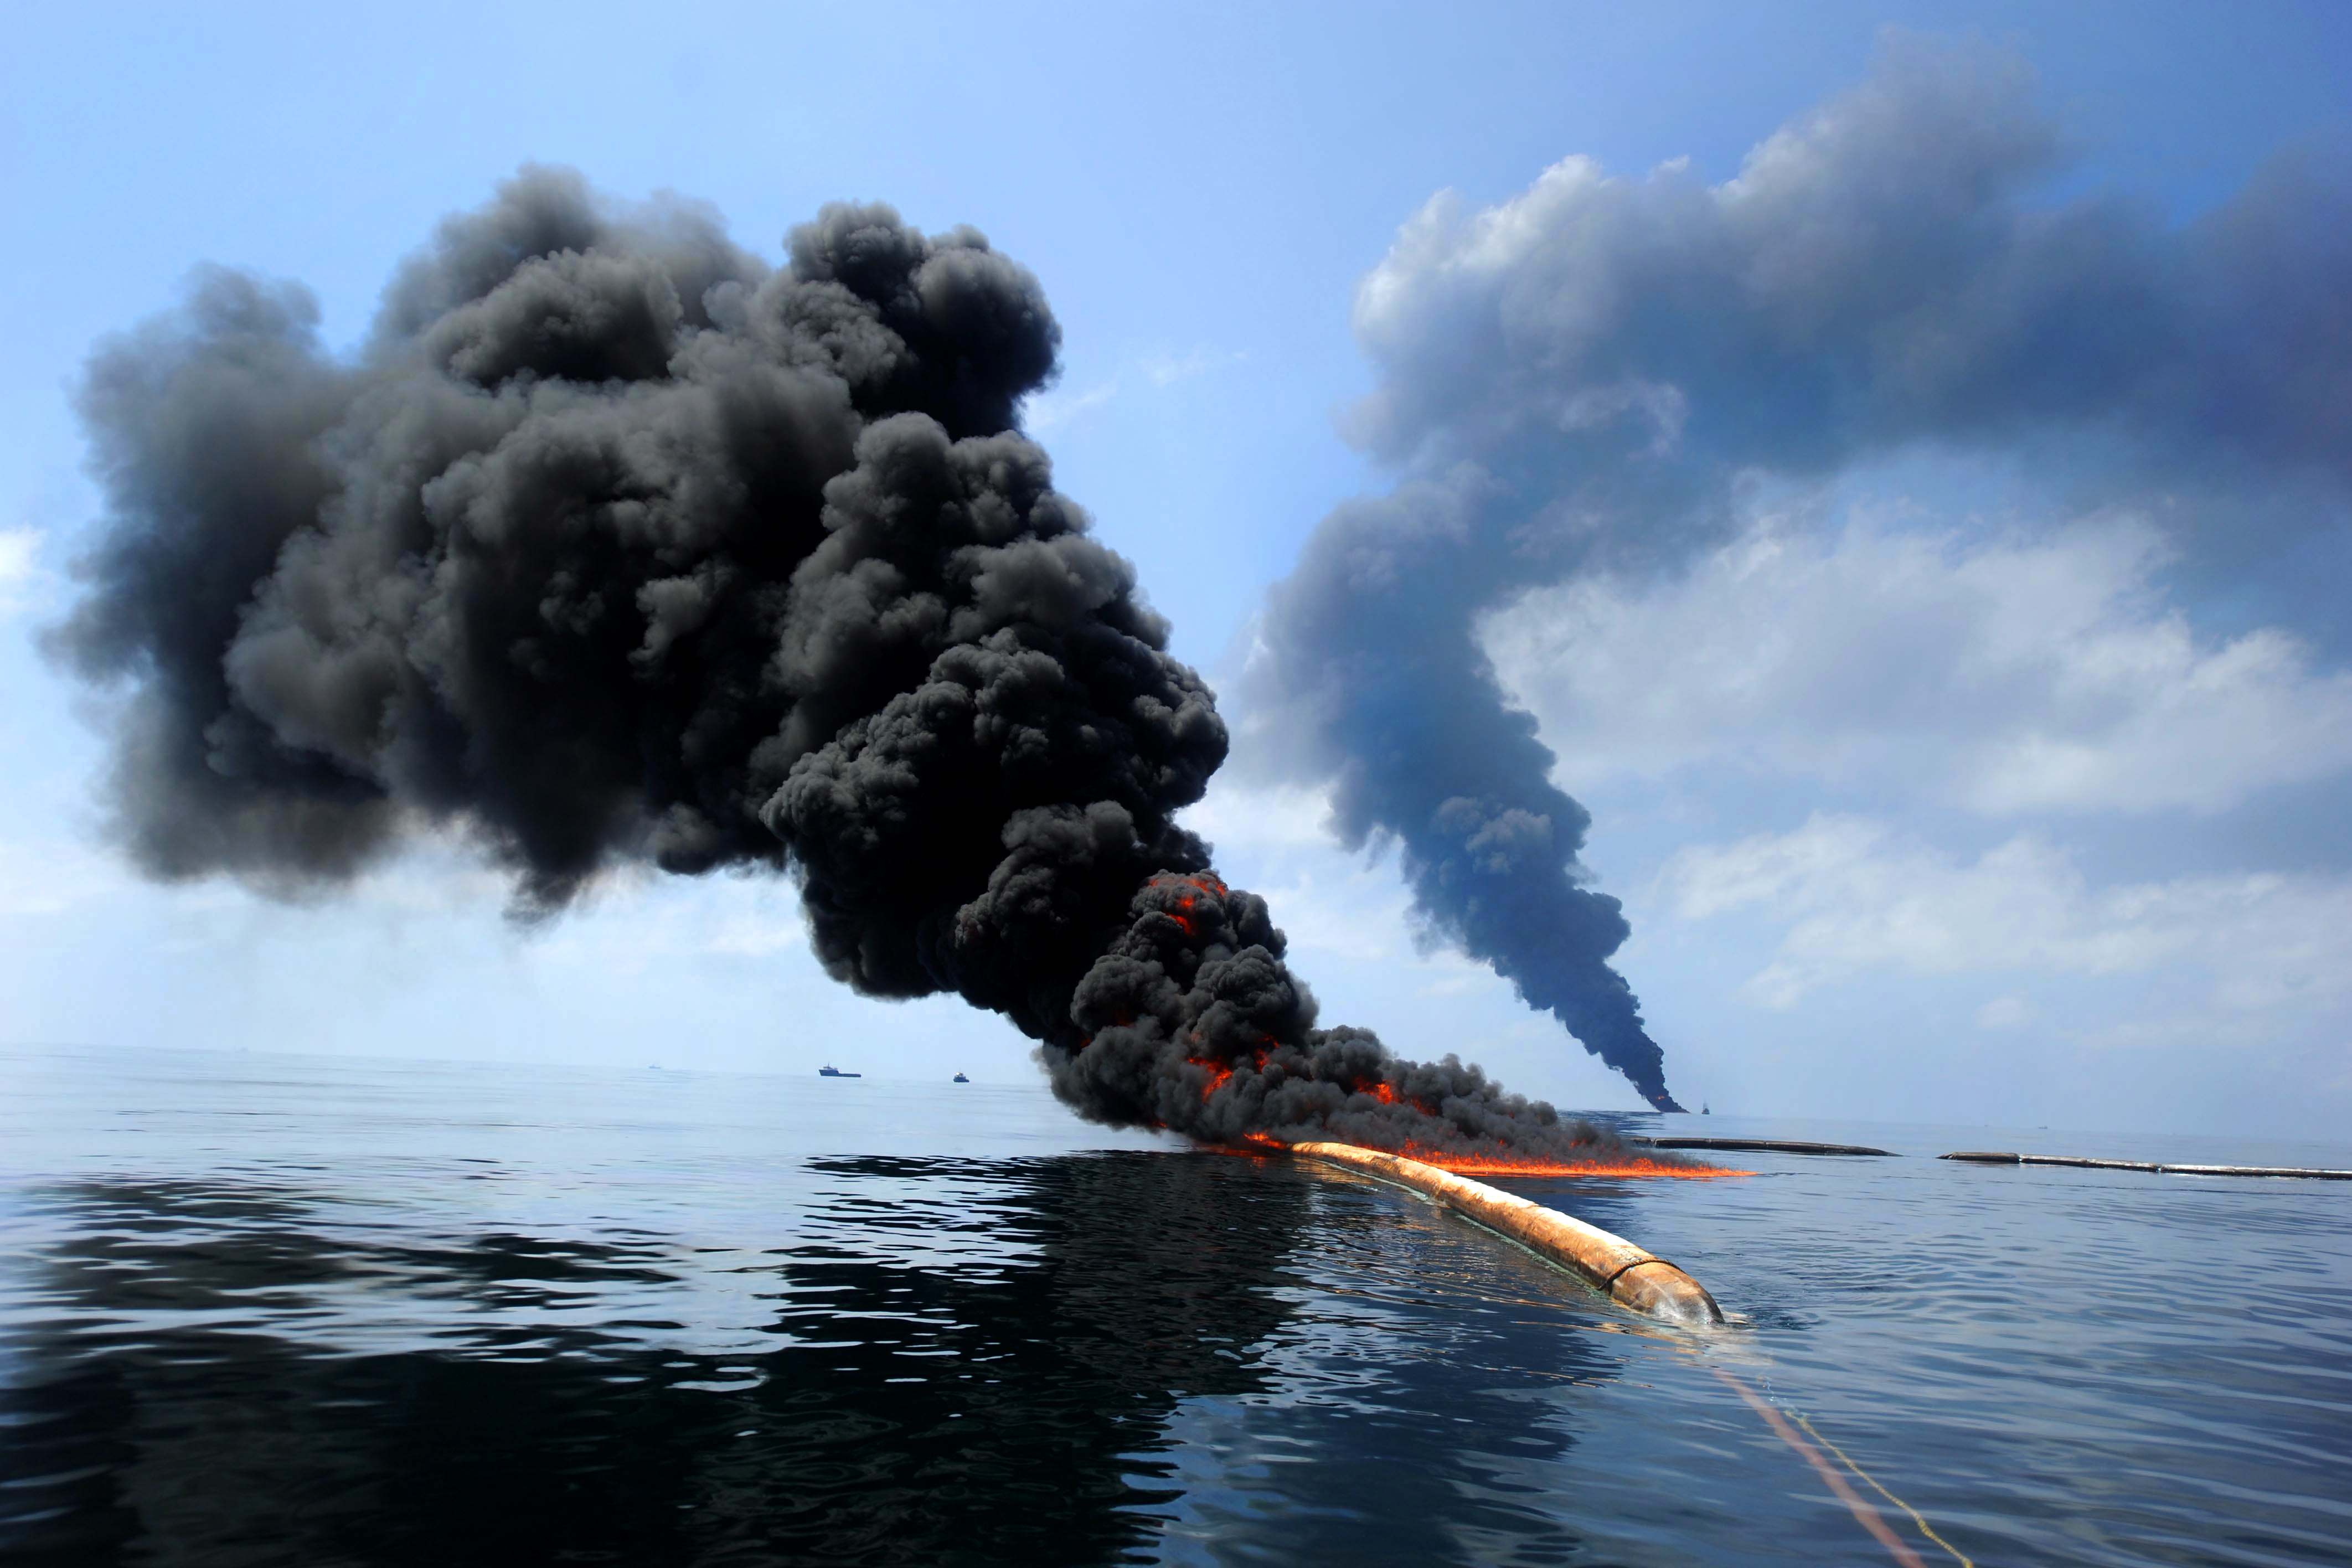 The Deepwater Horizon oil spill also referred to as the BP oil spillleak the BP oil disaster the Gulf of Mexico oil spill and the Macondo blowout is an